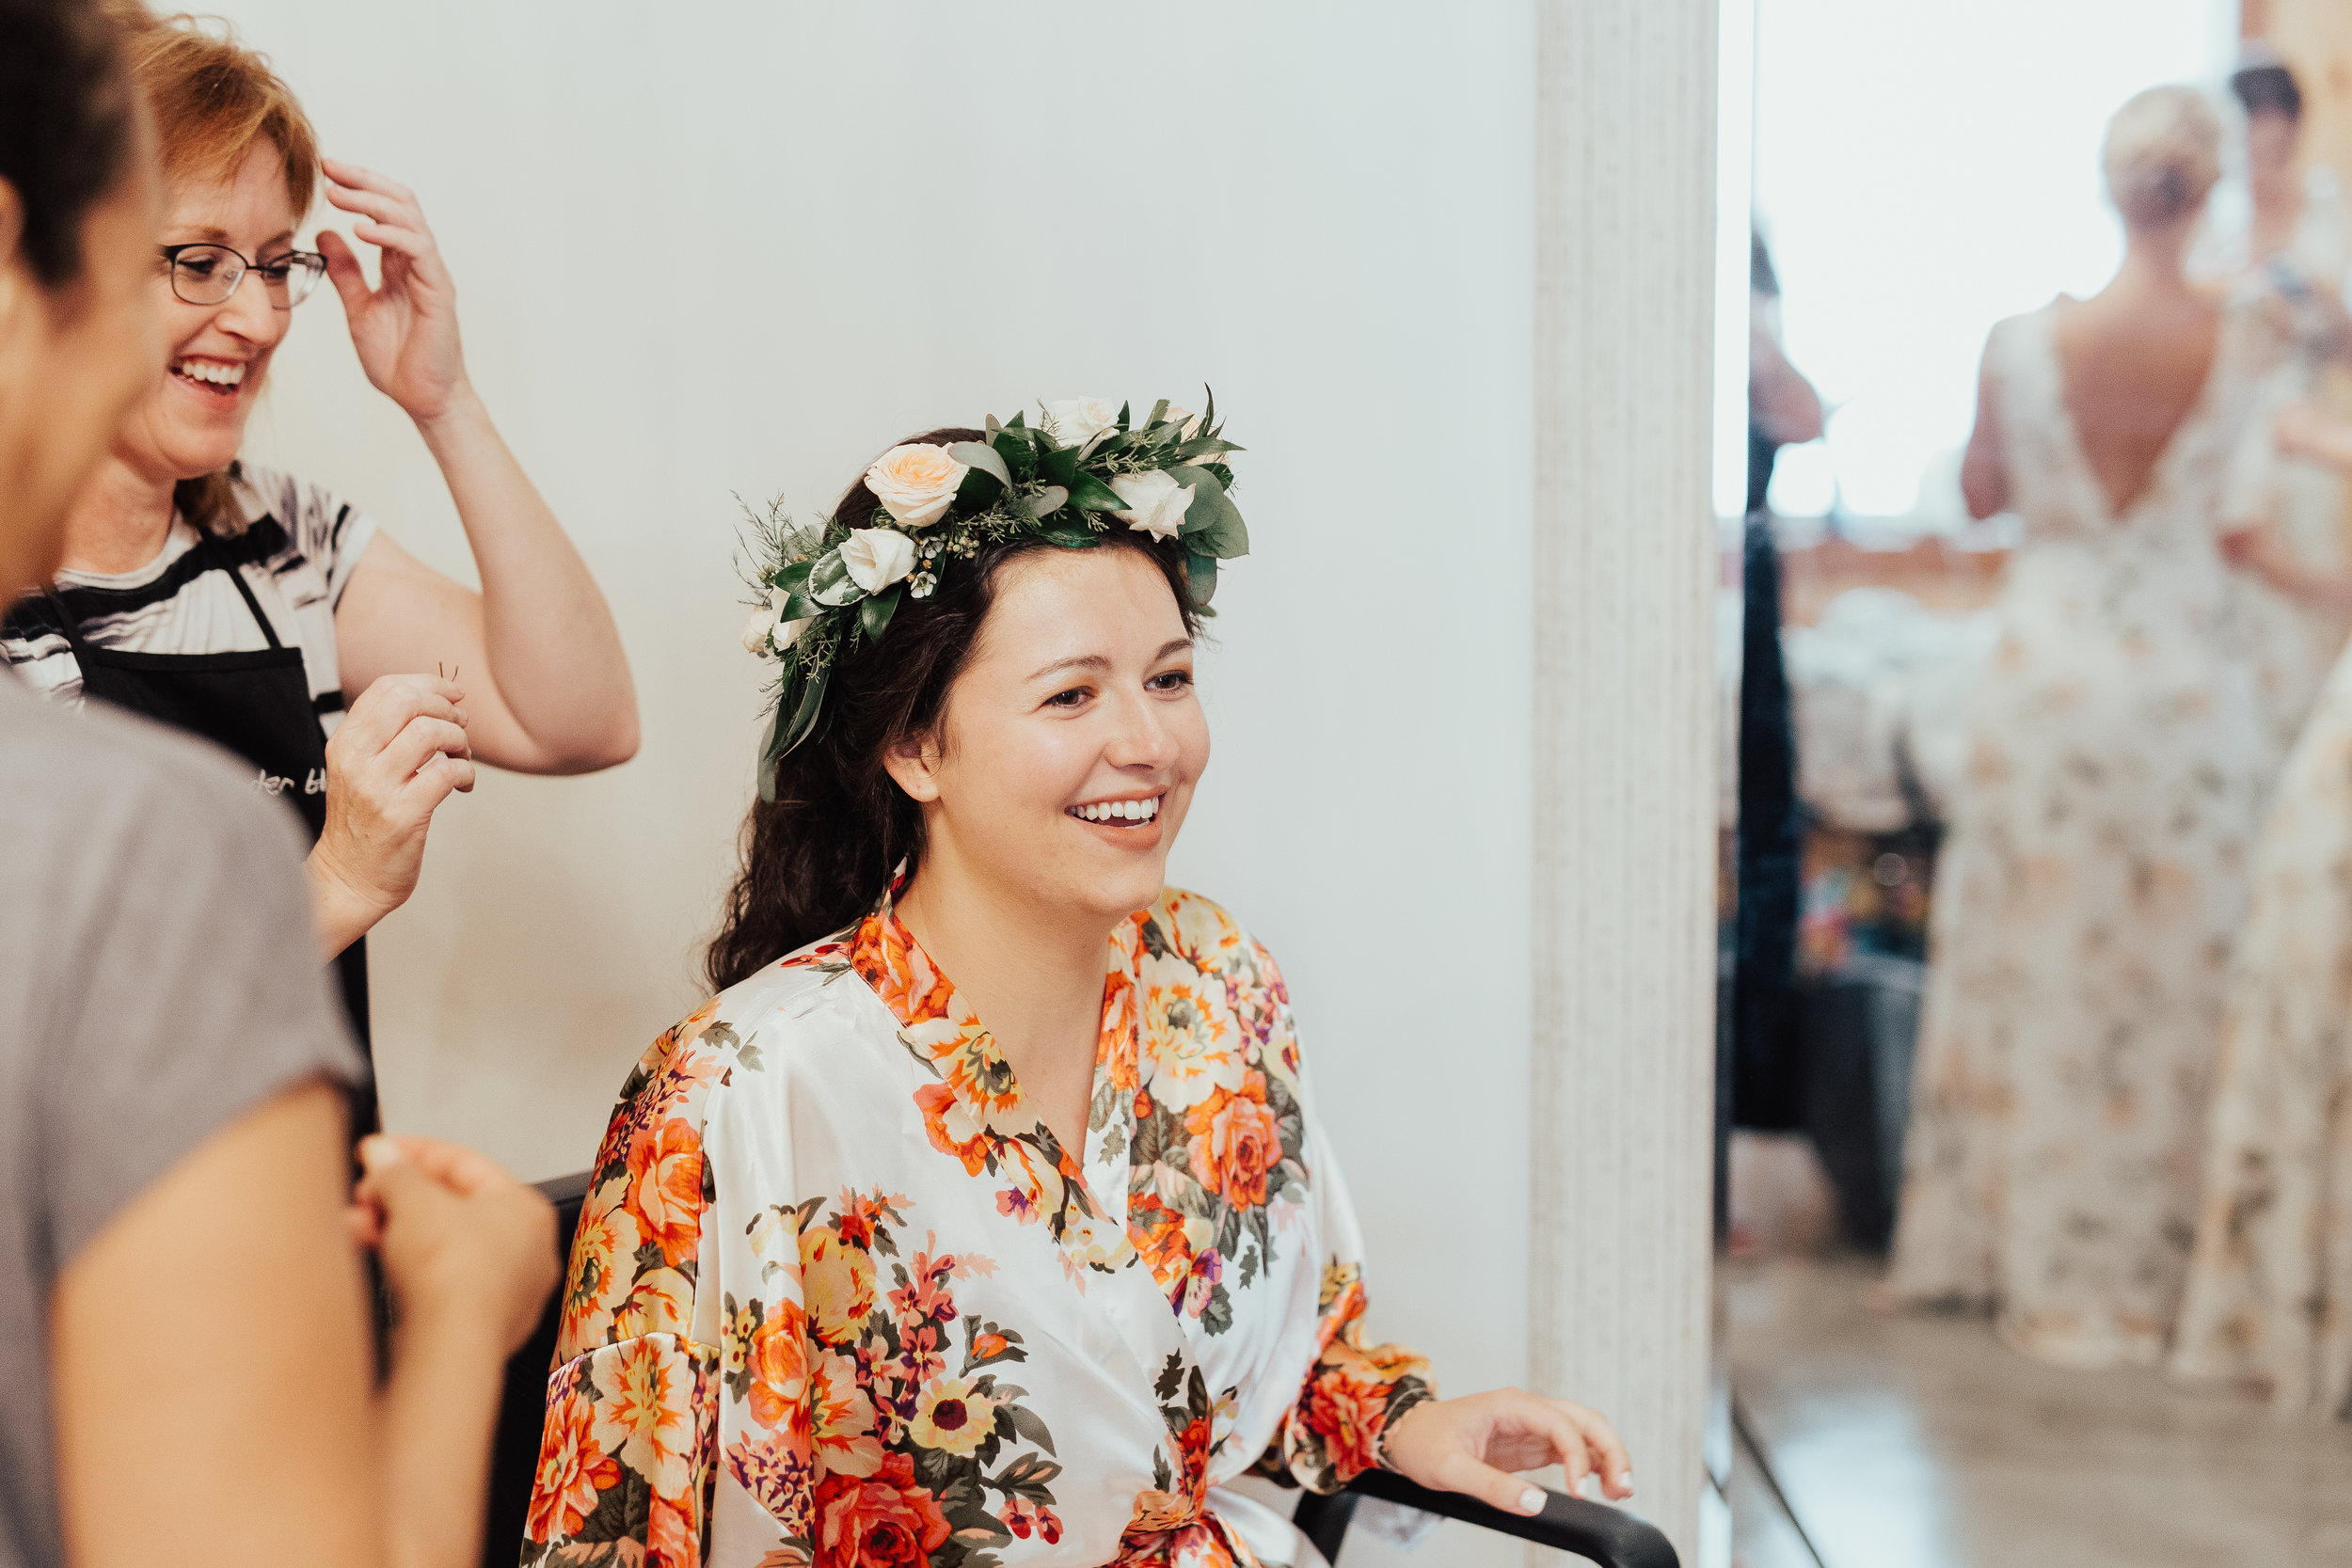 The bride smiles as she sees the image of herself in the mirror with her freshly placed flower crown by Lavender Blue. Lots of bobby pins were needed to secure the crown in her beautiful thick locks of dark , curly hair.